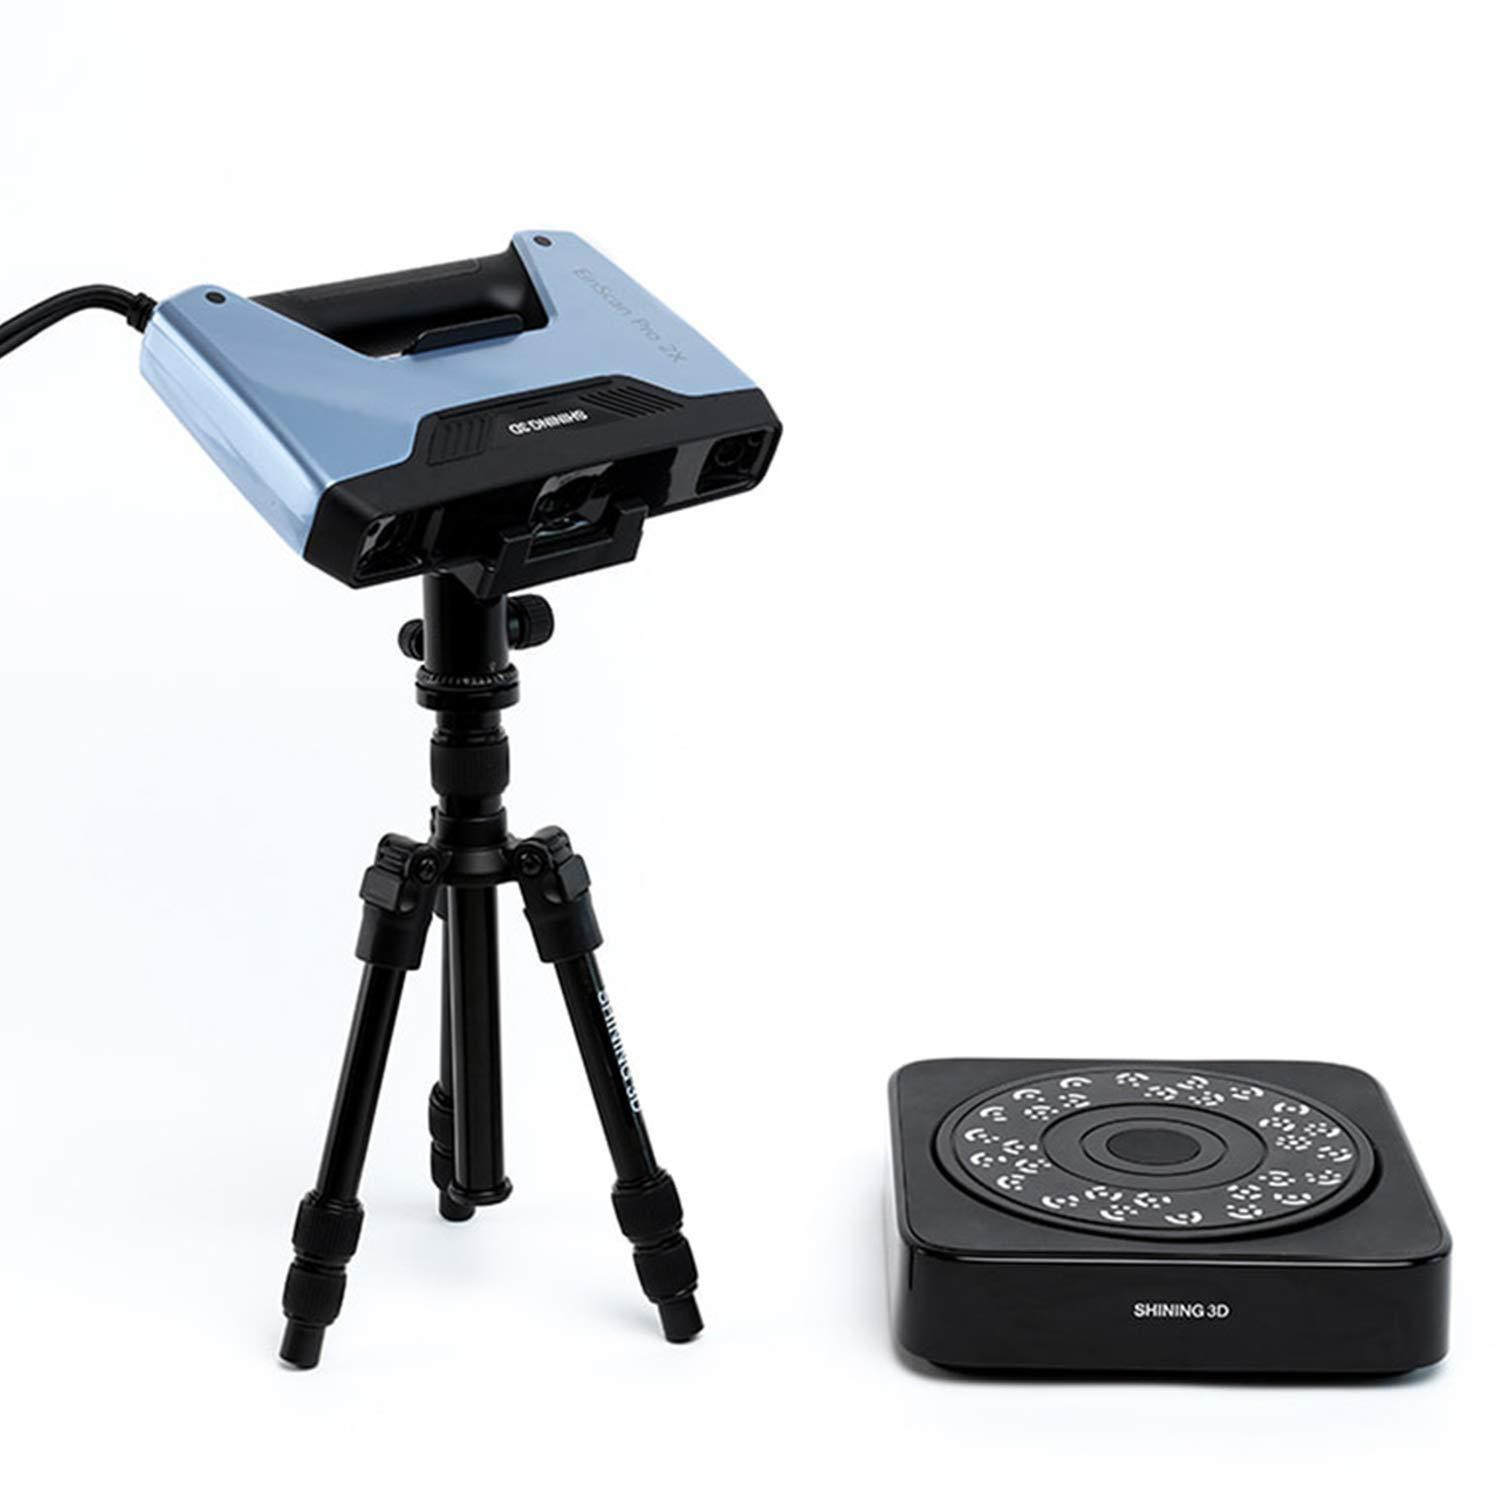 [ EinScan Pro 2X ] + [ Industrial Pack - Tripod and Turntable ] Shining3D Multi-Functional Handheld 3D Scanner with Lifetime SolidEdge CAD Software for Auto Art Design Healthcare Research Education